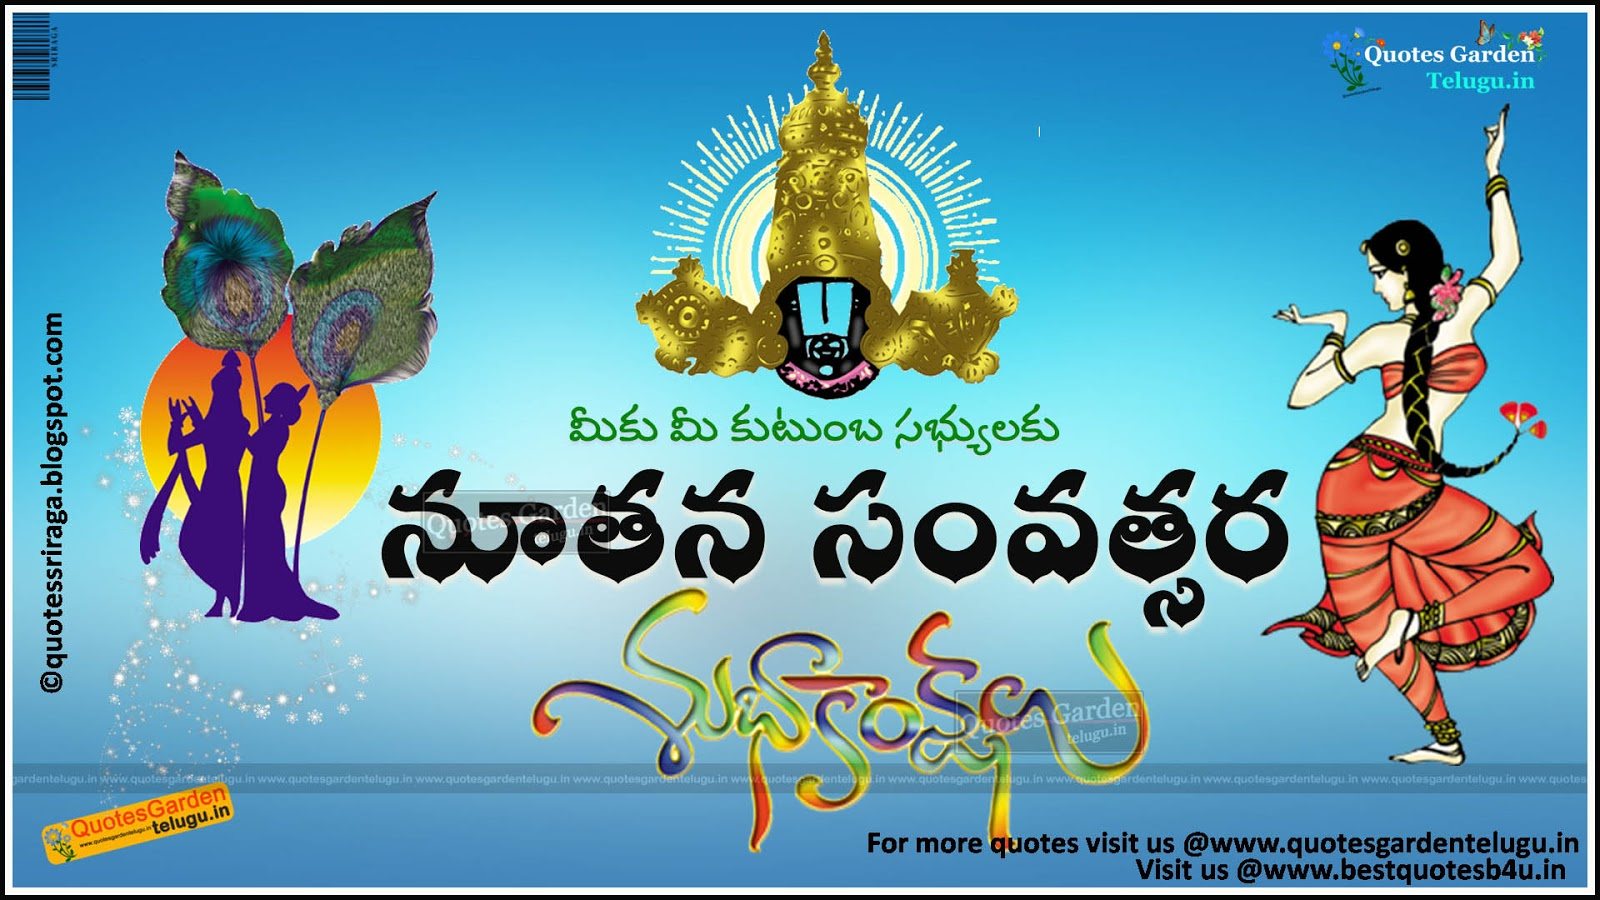 Best telugu new year greetings wishes wallpapers quotes garden best telugu new year greetings wishes wallpapers kristyandbryce Image collections